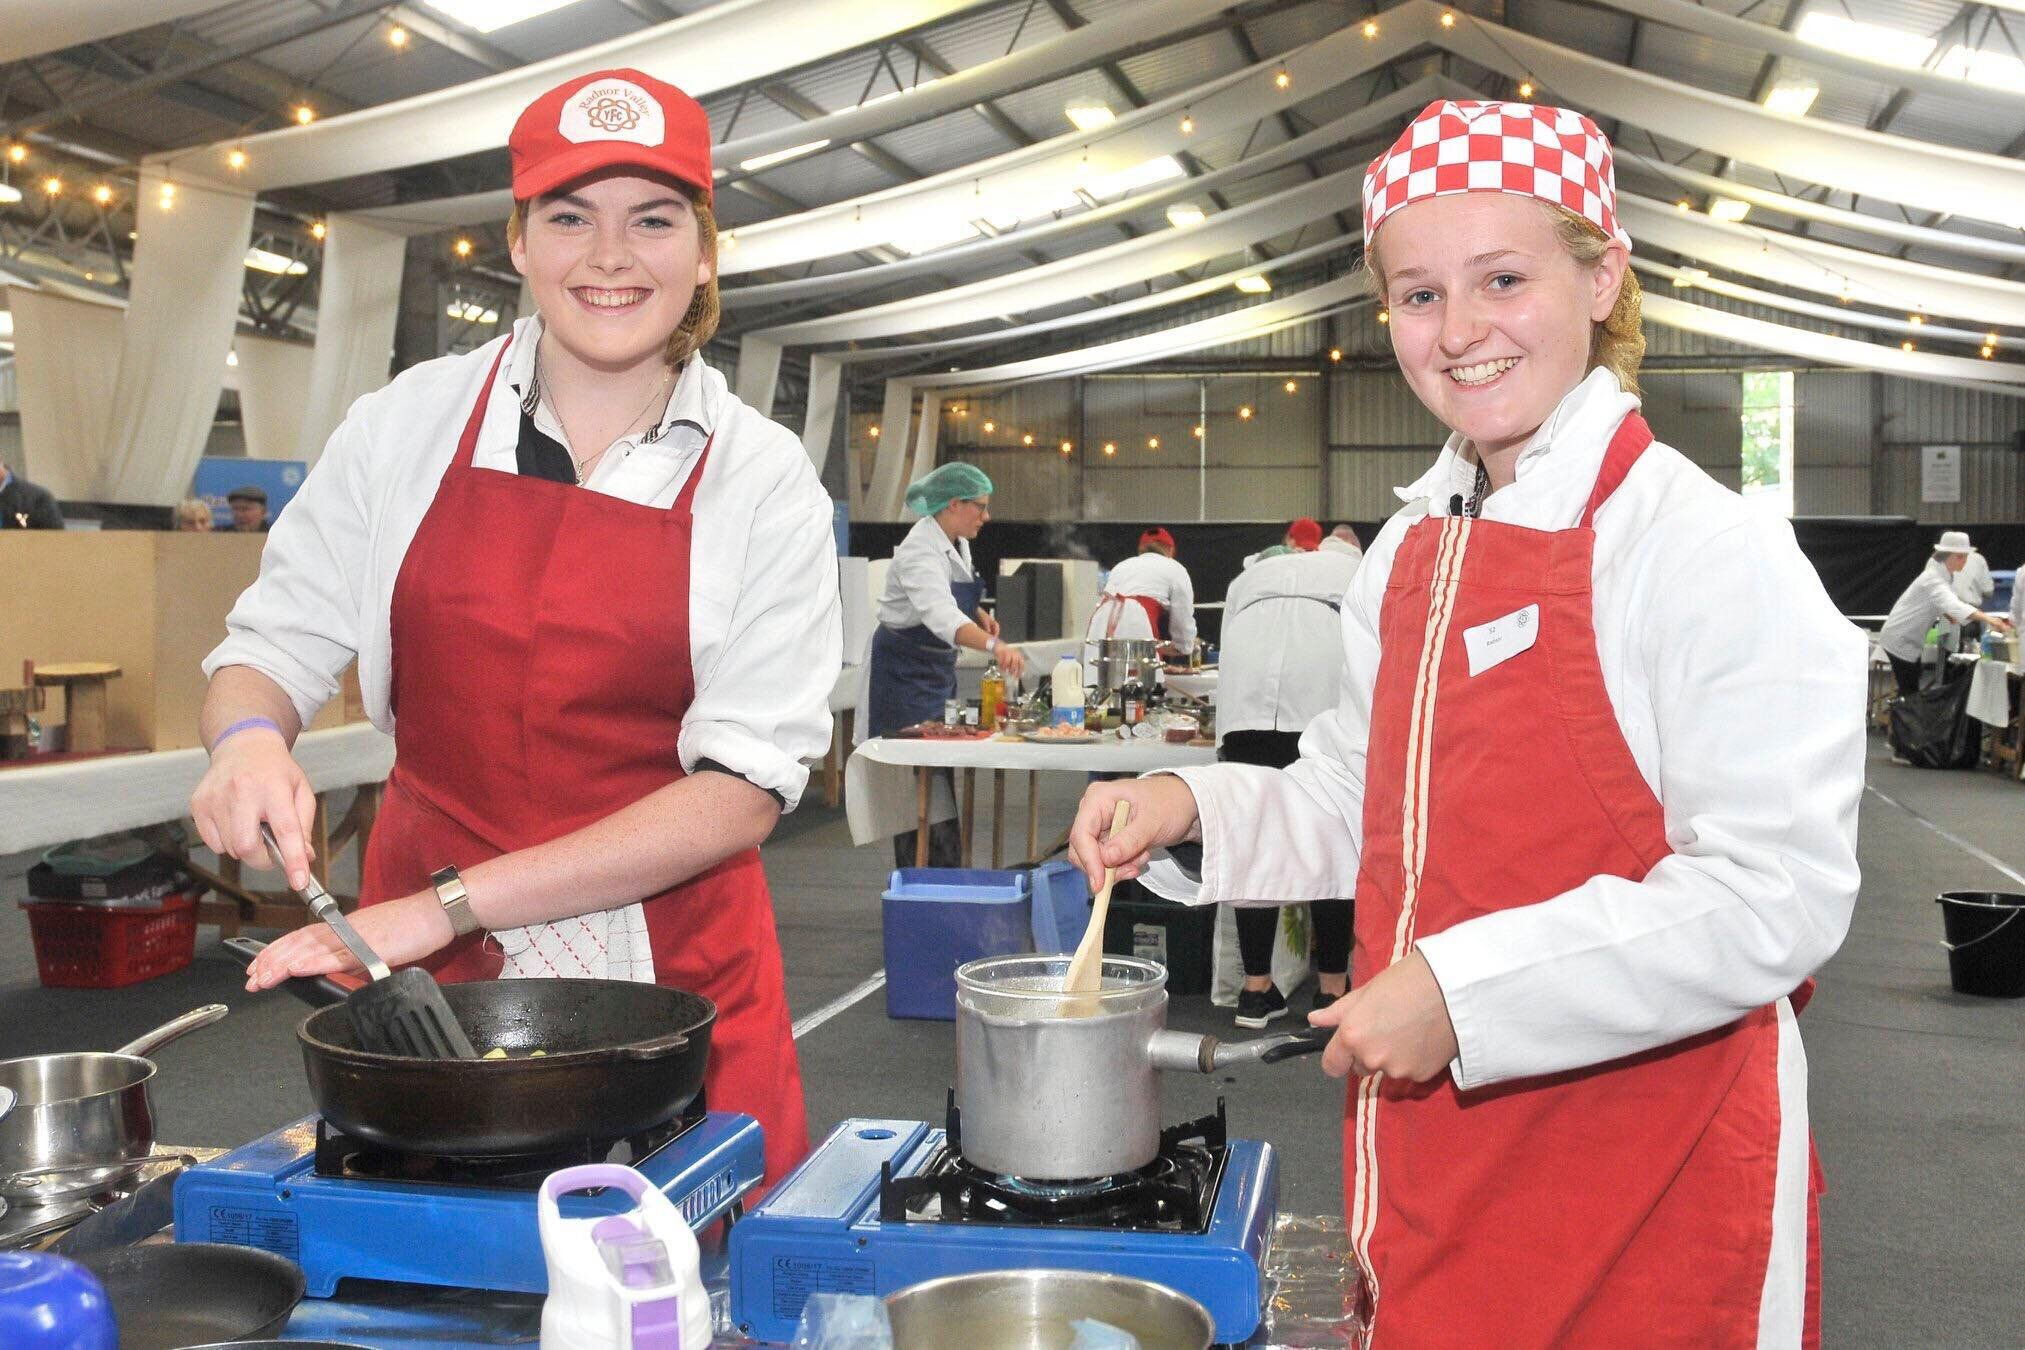 Louise Price & Gemma Morris, Radnor Valley YFC in the Cookery competition.